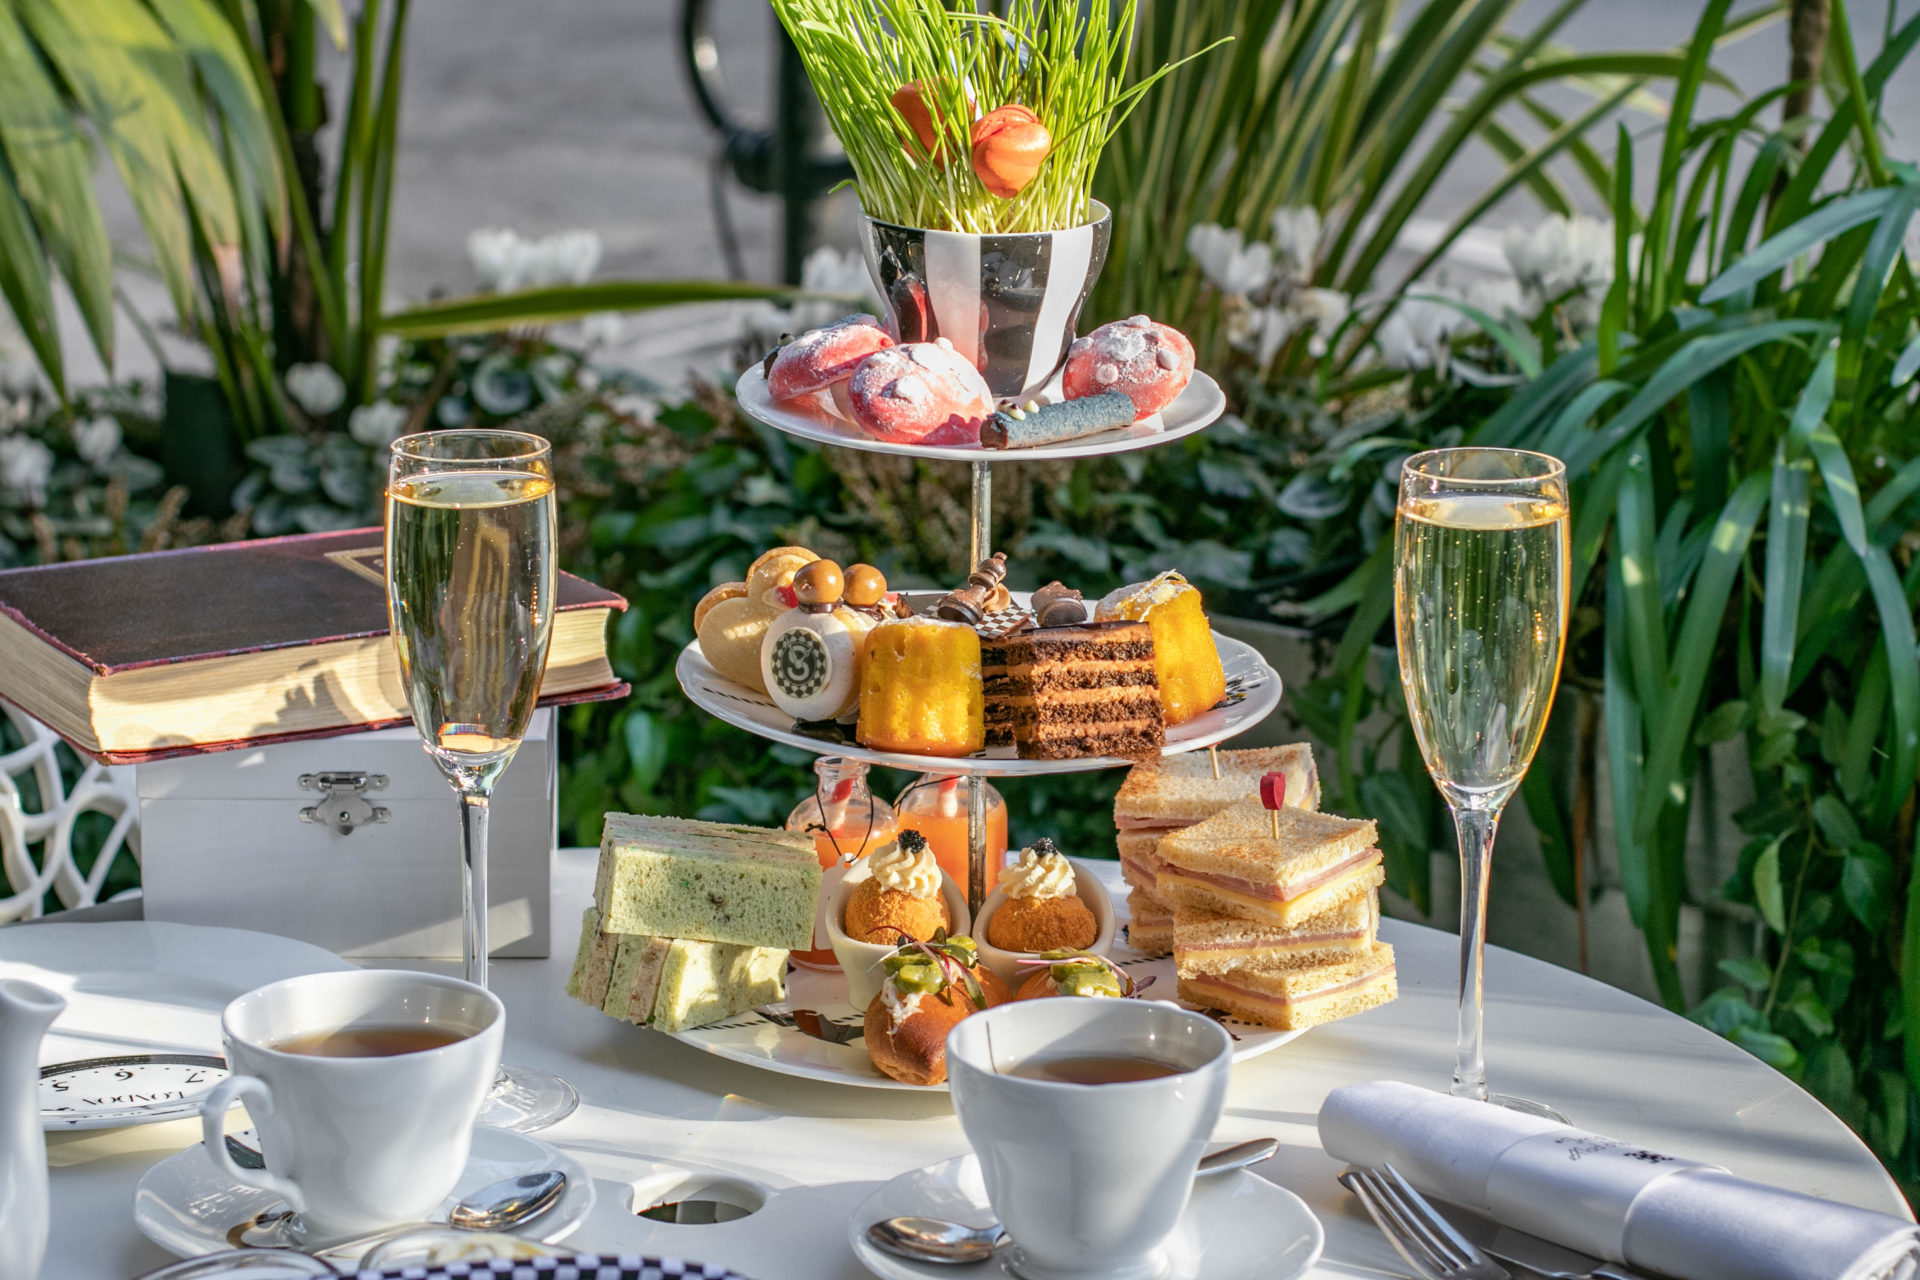 The Luxe Bible List of Where to Treat Mum this Mother's Day: Mad Hatter's Afternoon Tea at Sanderson London